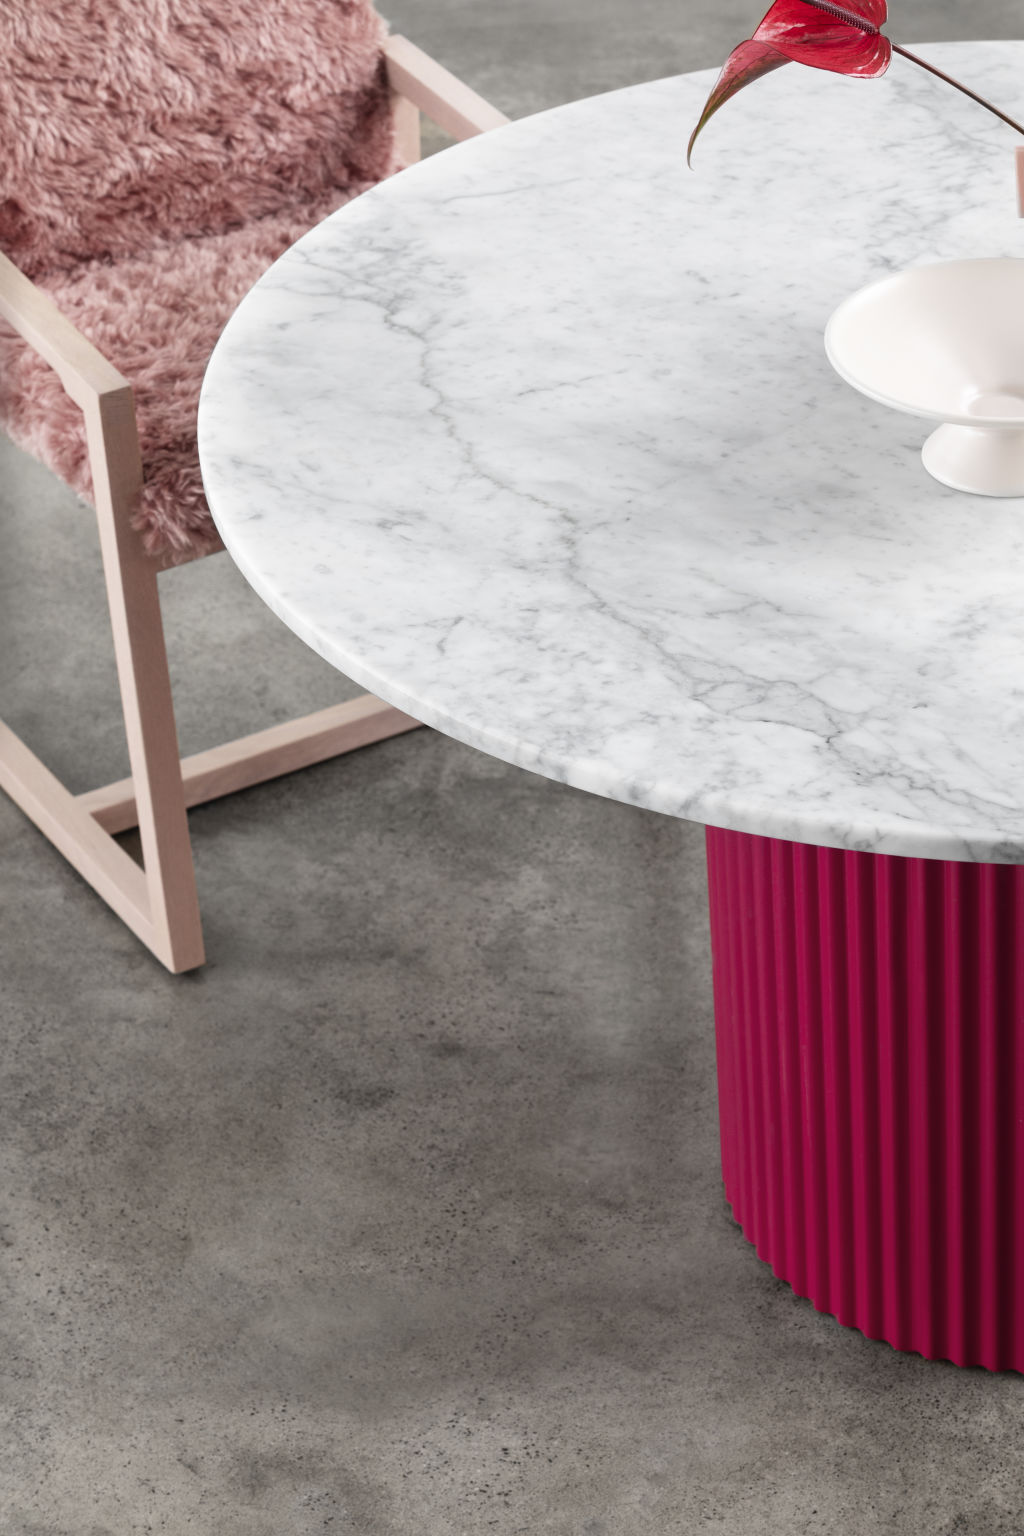 Ridge Dining Table by Beeline Design NOT FOR REUSE